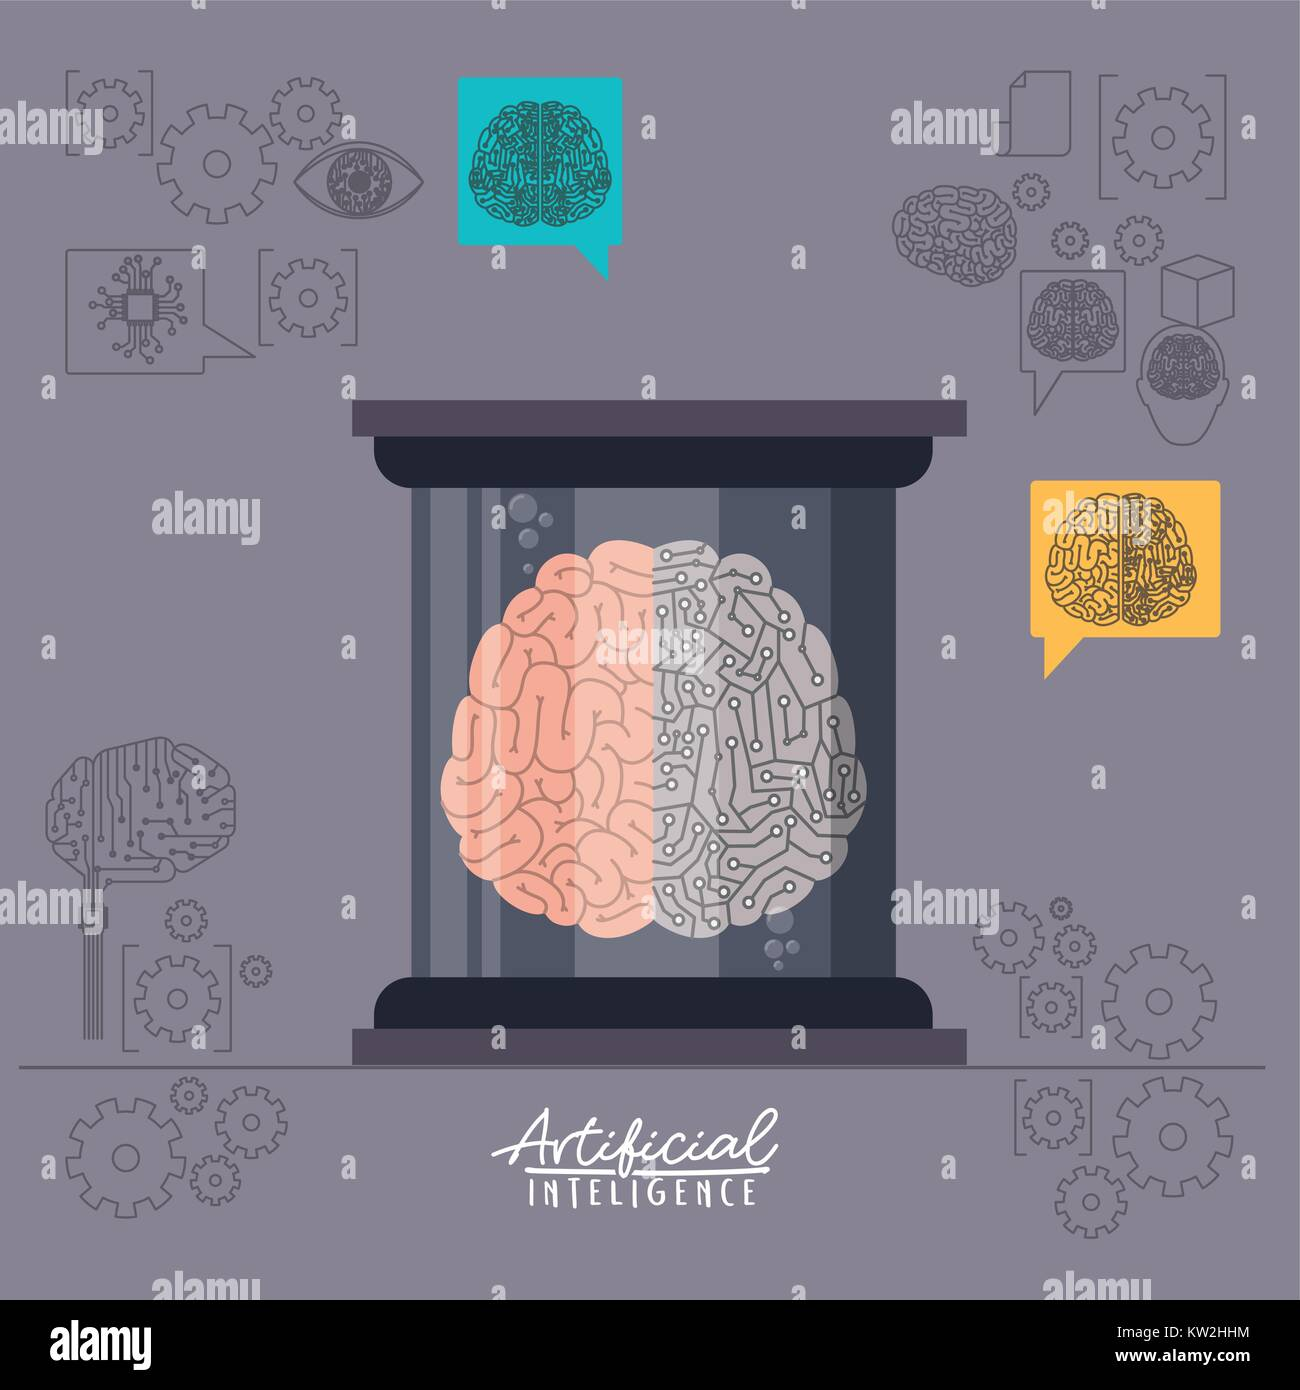 artificial intelligence poster with human brain in transparent container in thistle background - Stock Image